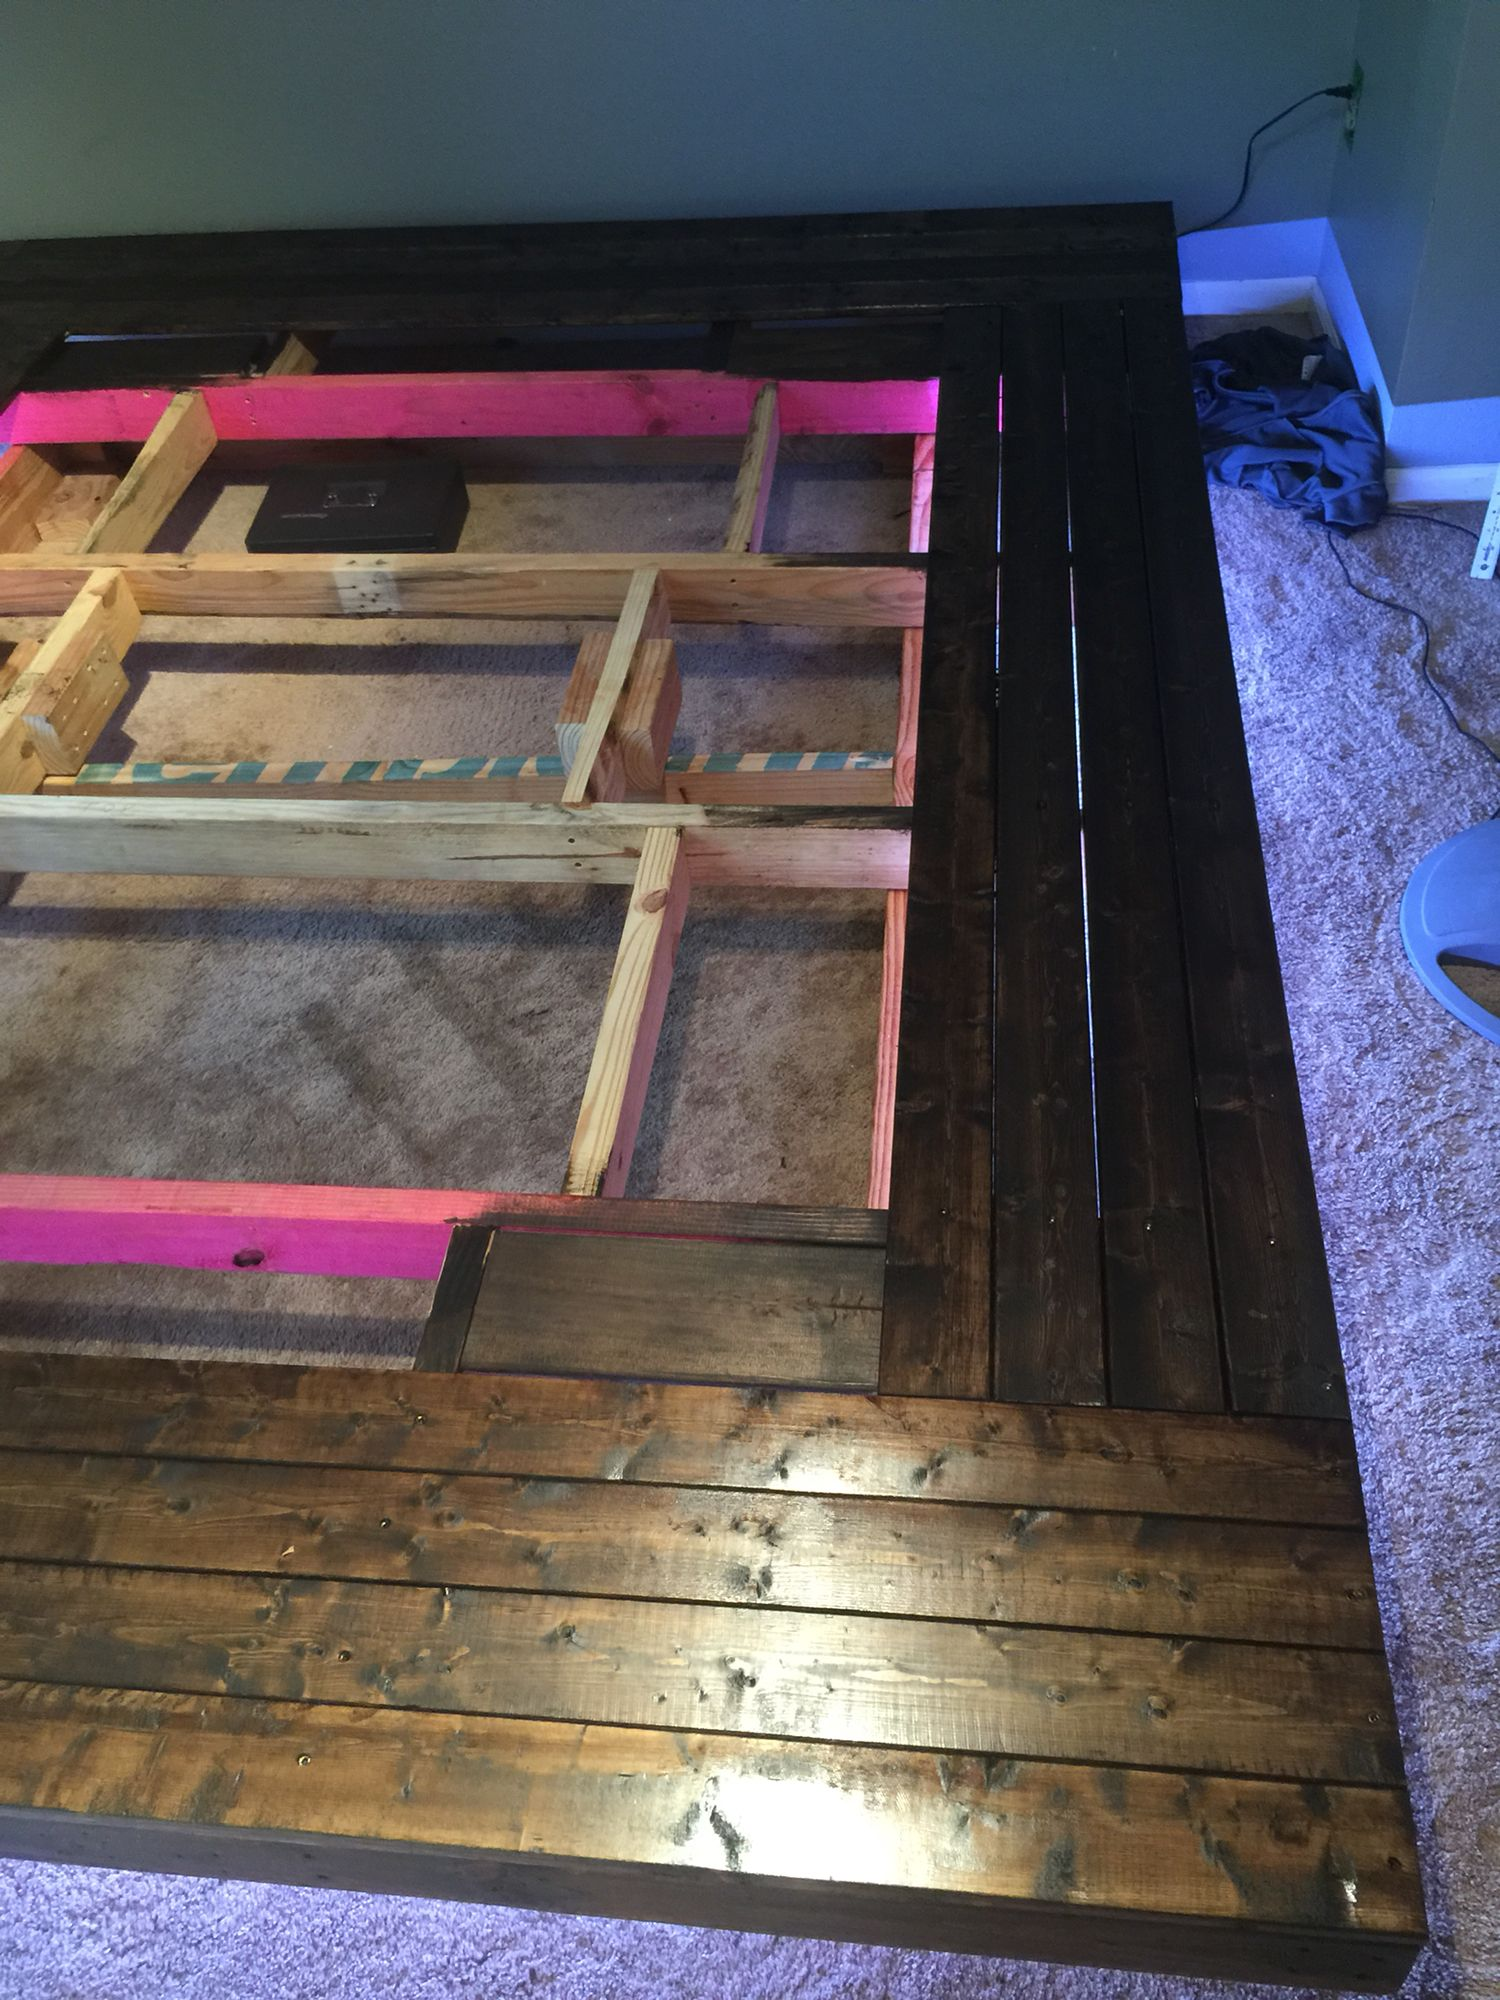 My version of the floating bed frame w/ color changing LED